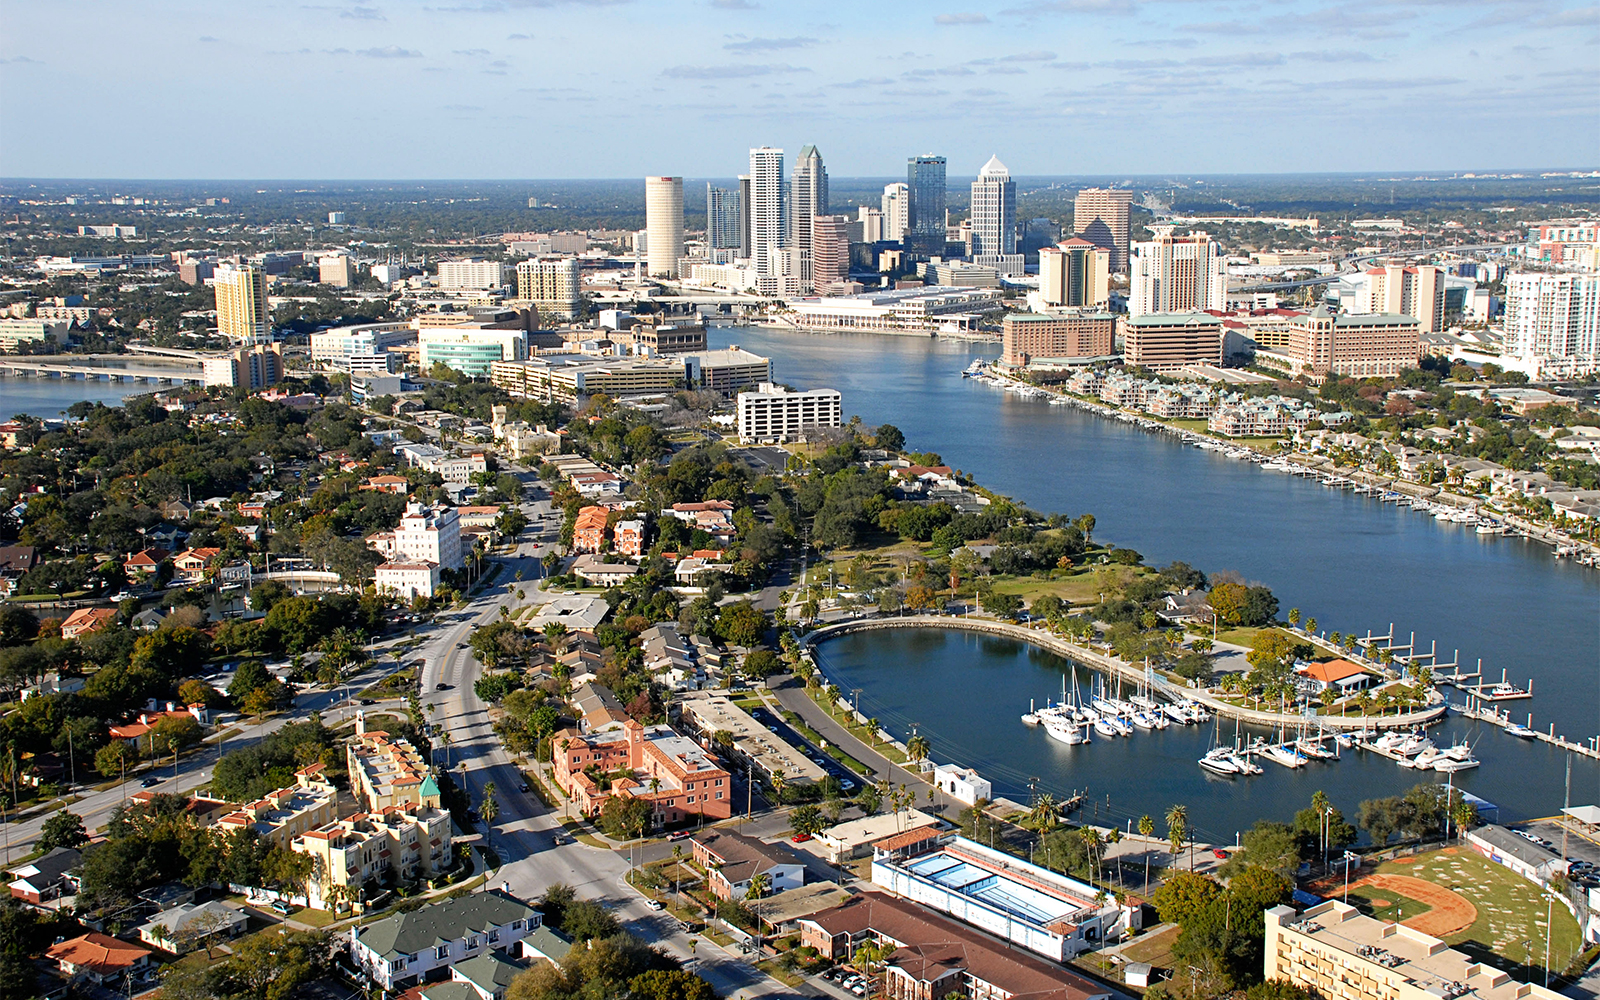 America's Best Cities for Picnics: No. 8 Tampa